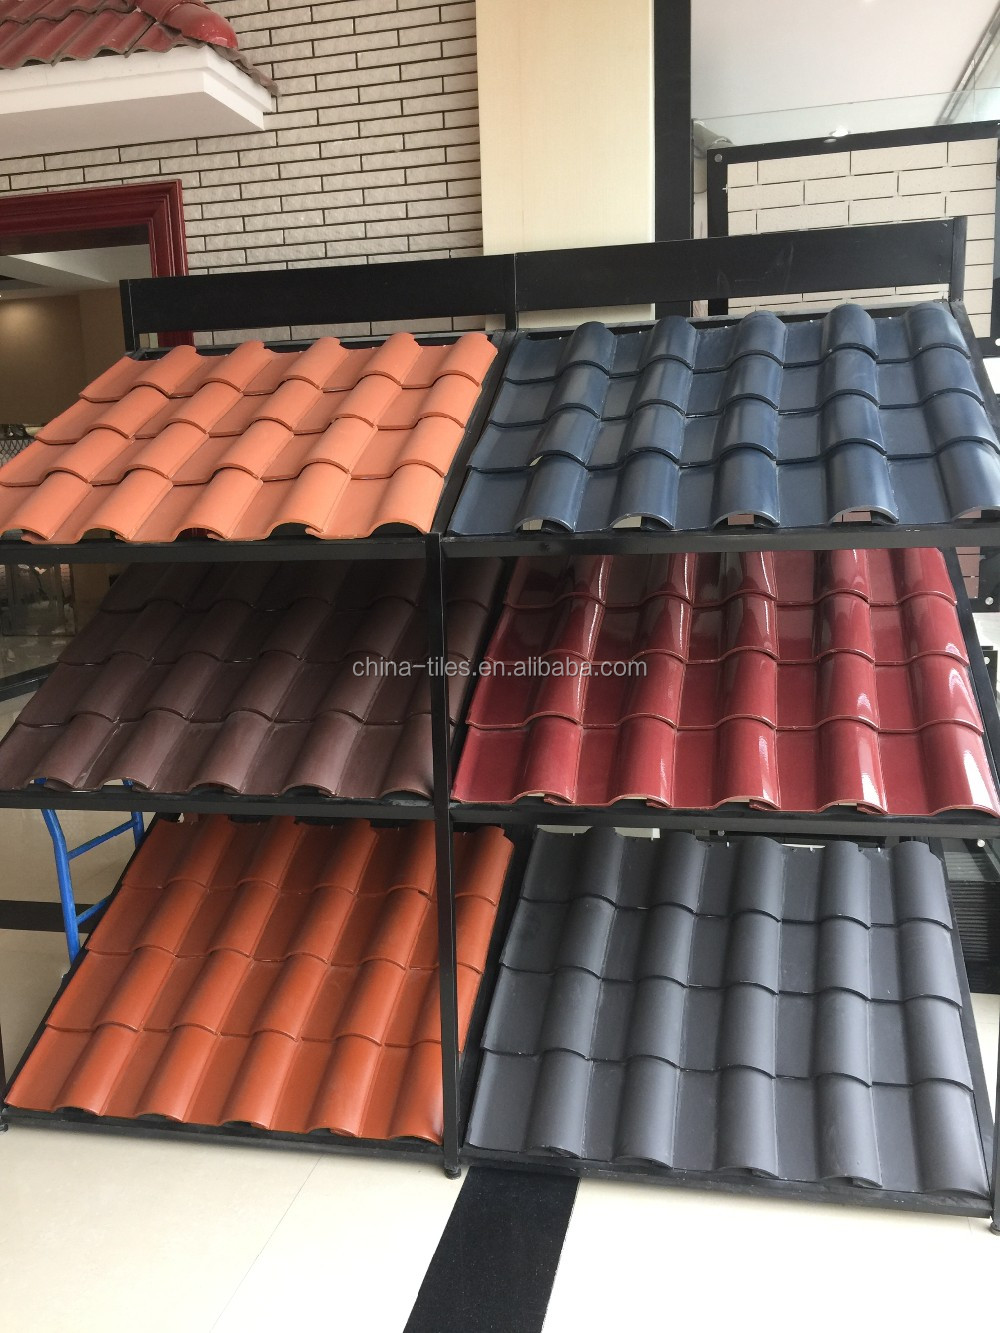 Spanish Style Terracotta Materials Roof Tiles Price In